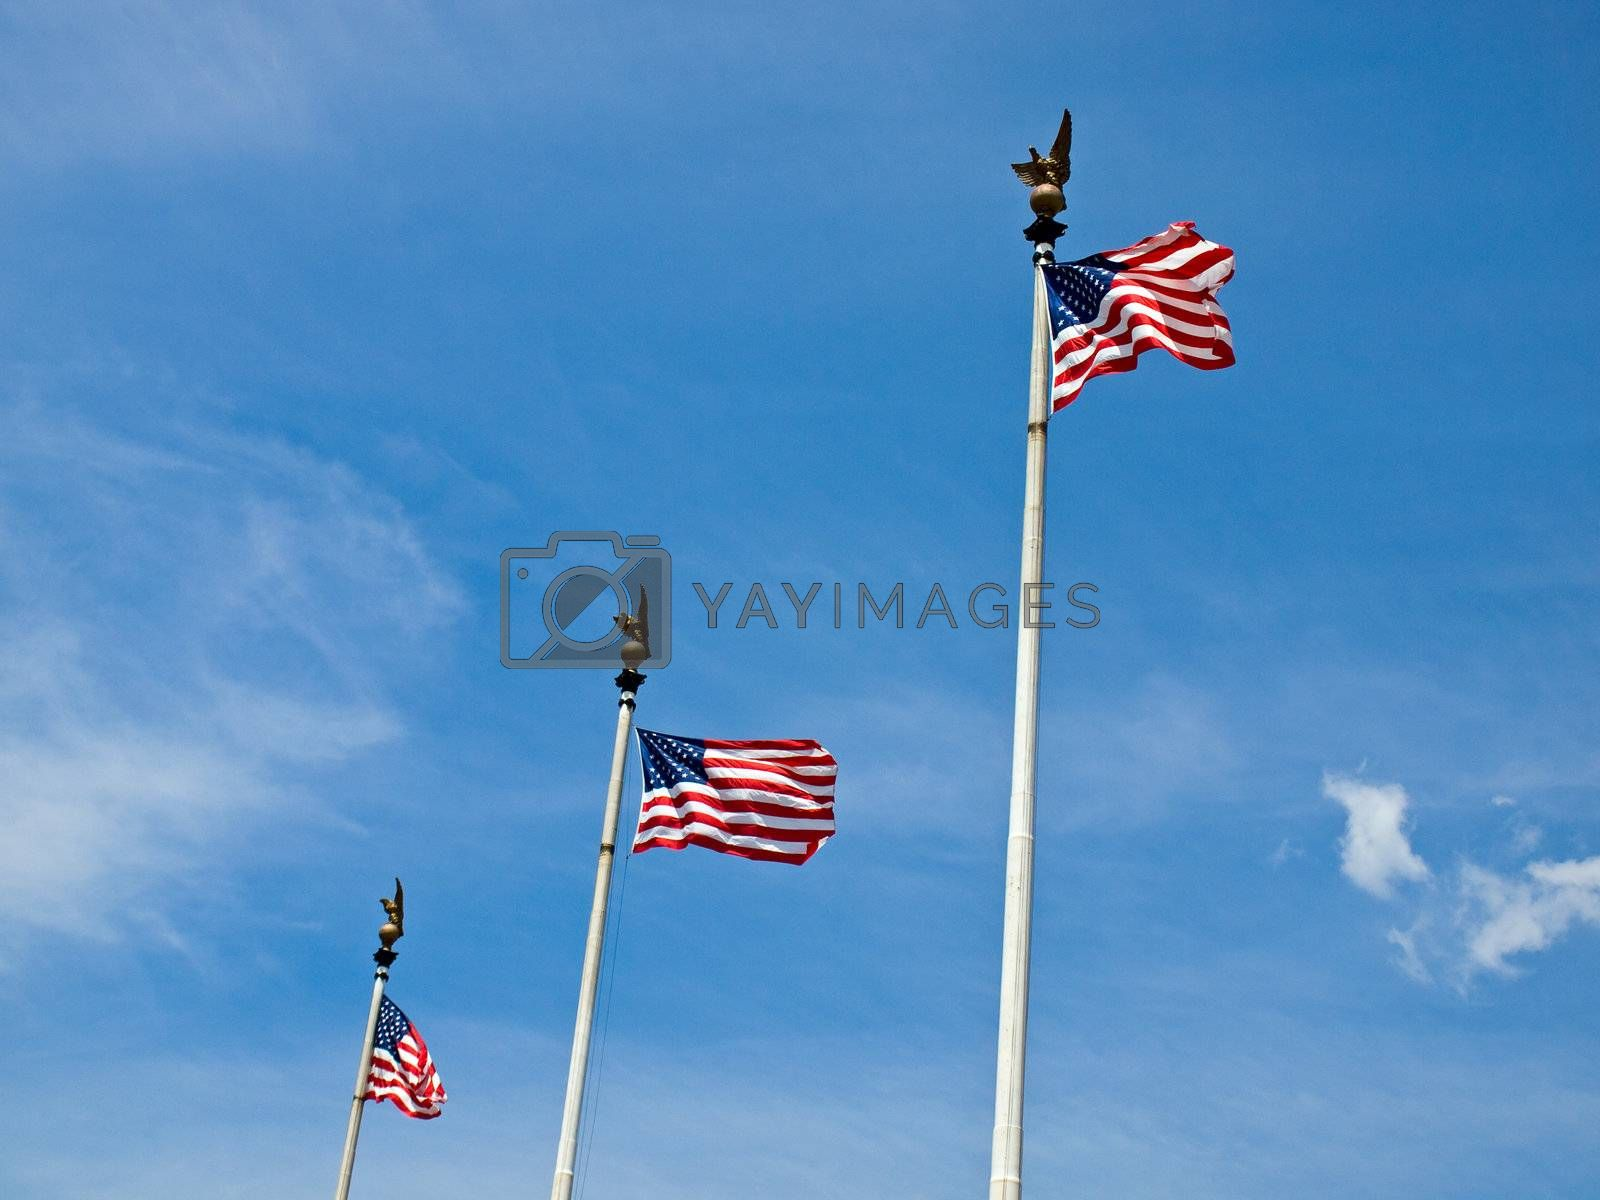 Three American Flags Waving Proudly on Tall Flagpoles